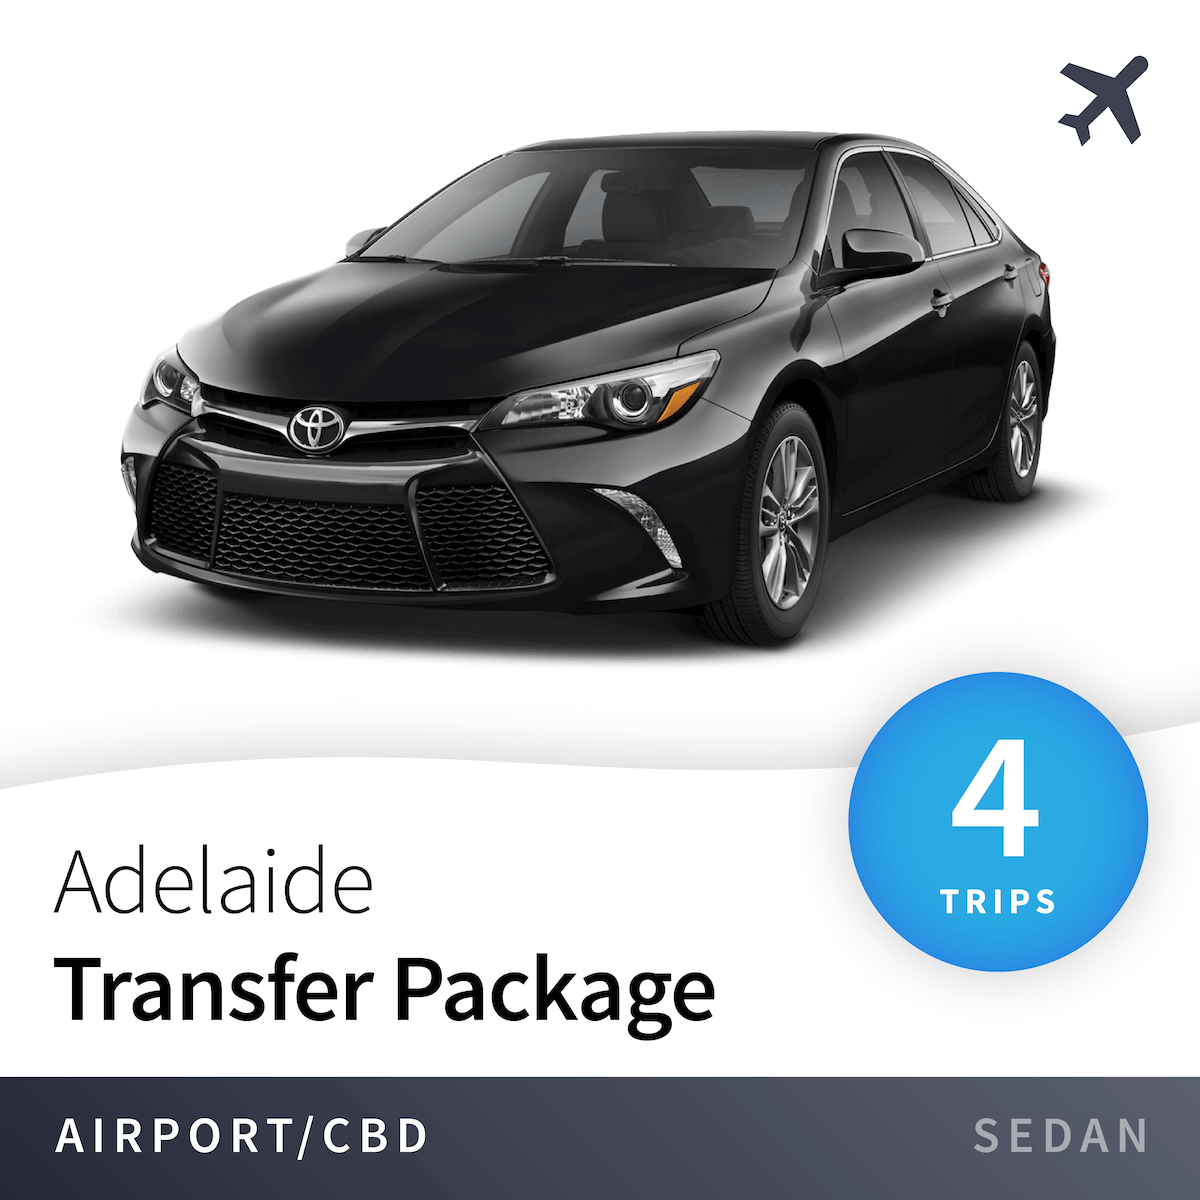 Adelaide Airport Transfer Package - Sedan (4 Trips) 1